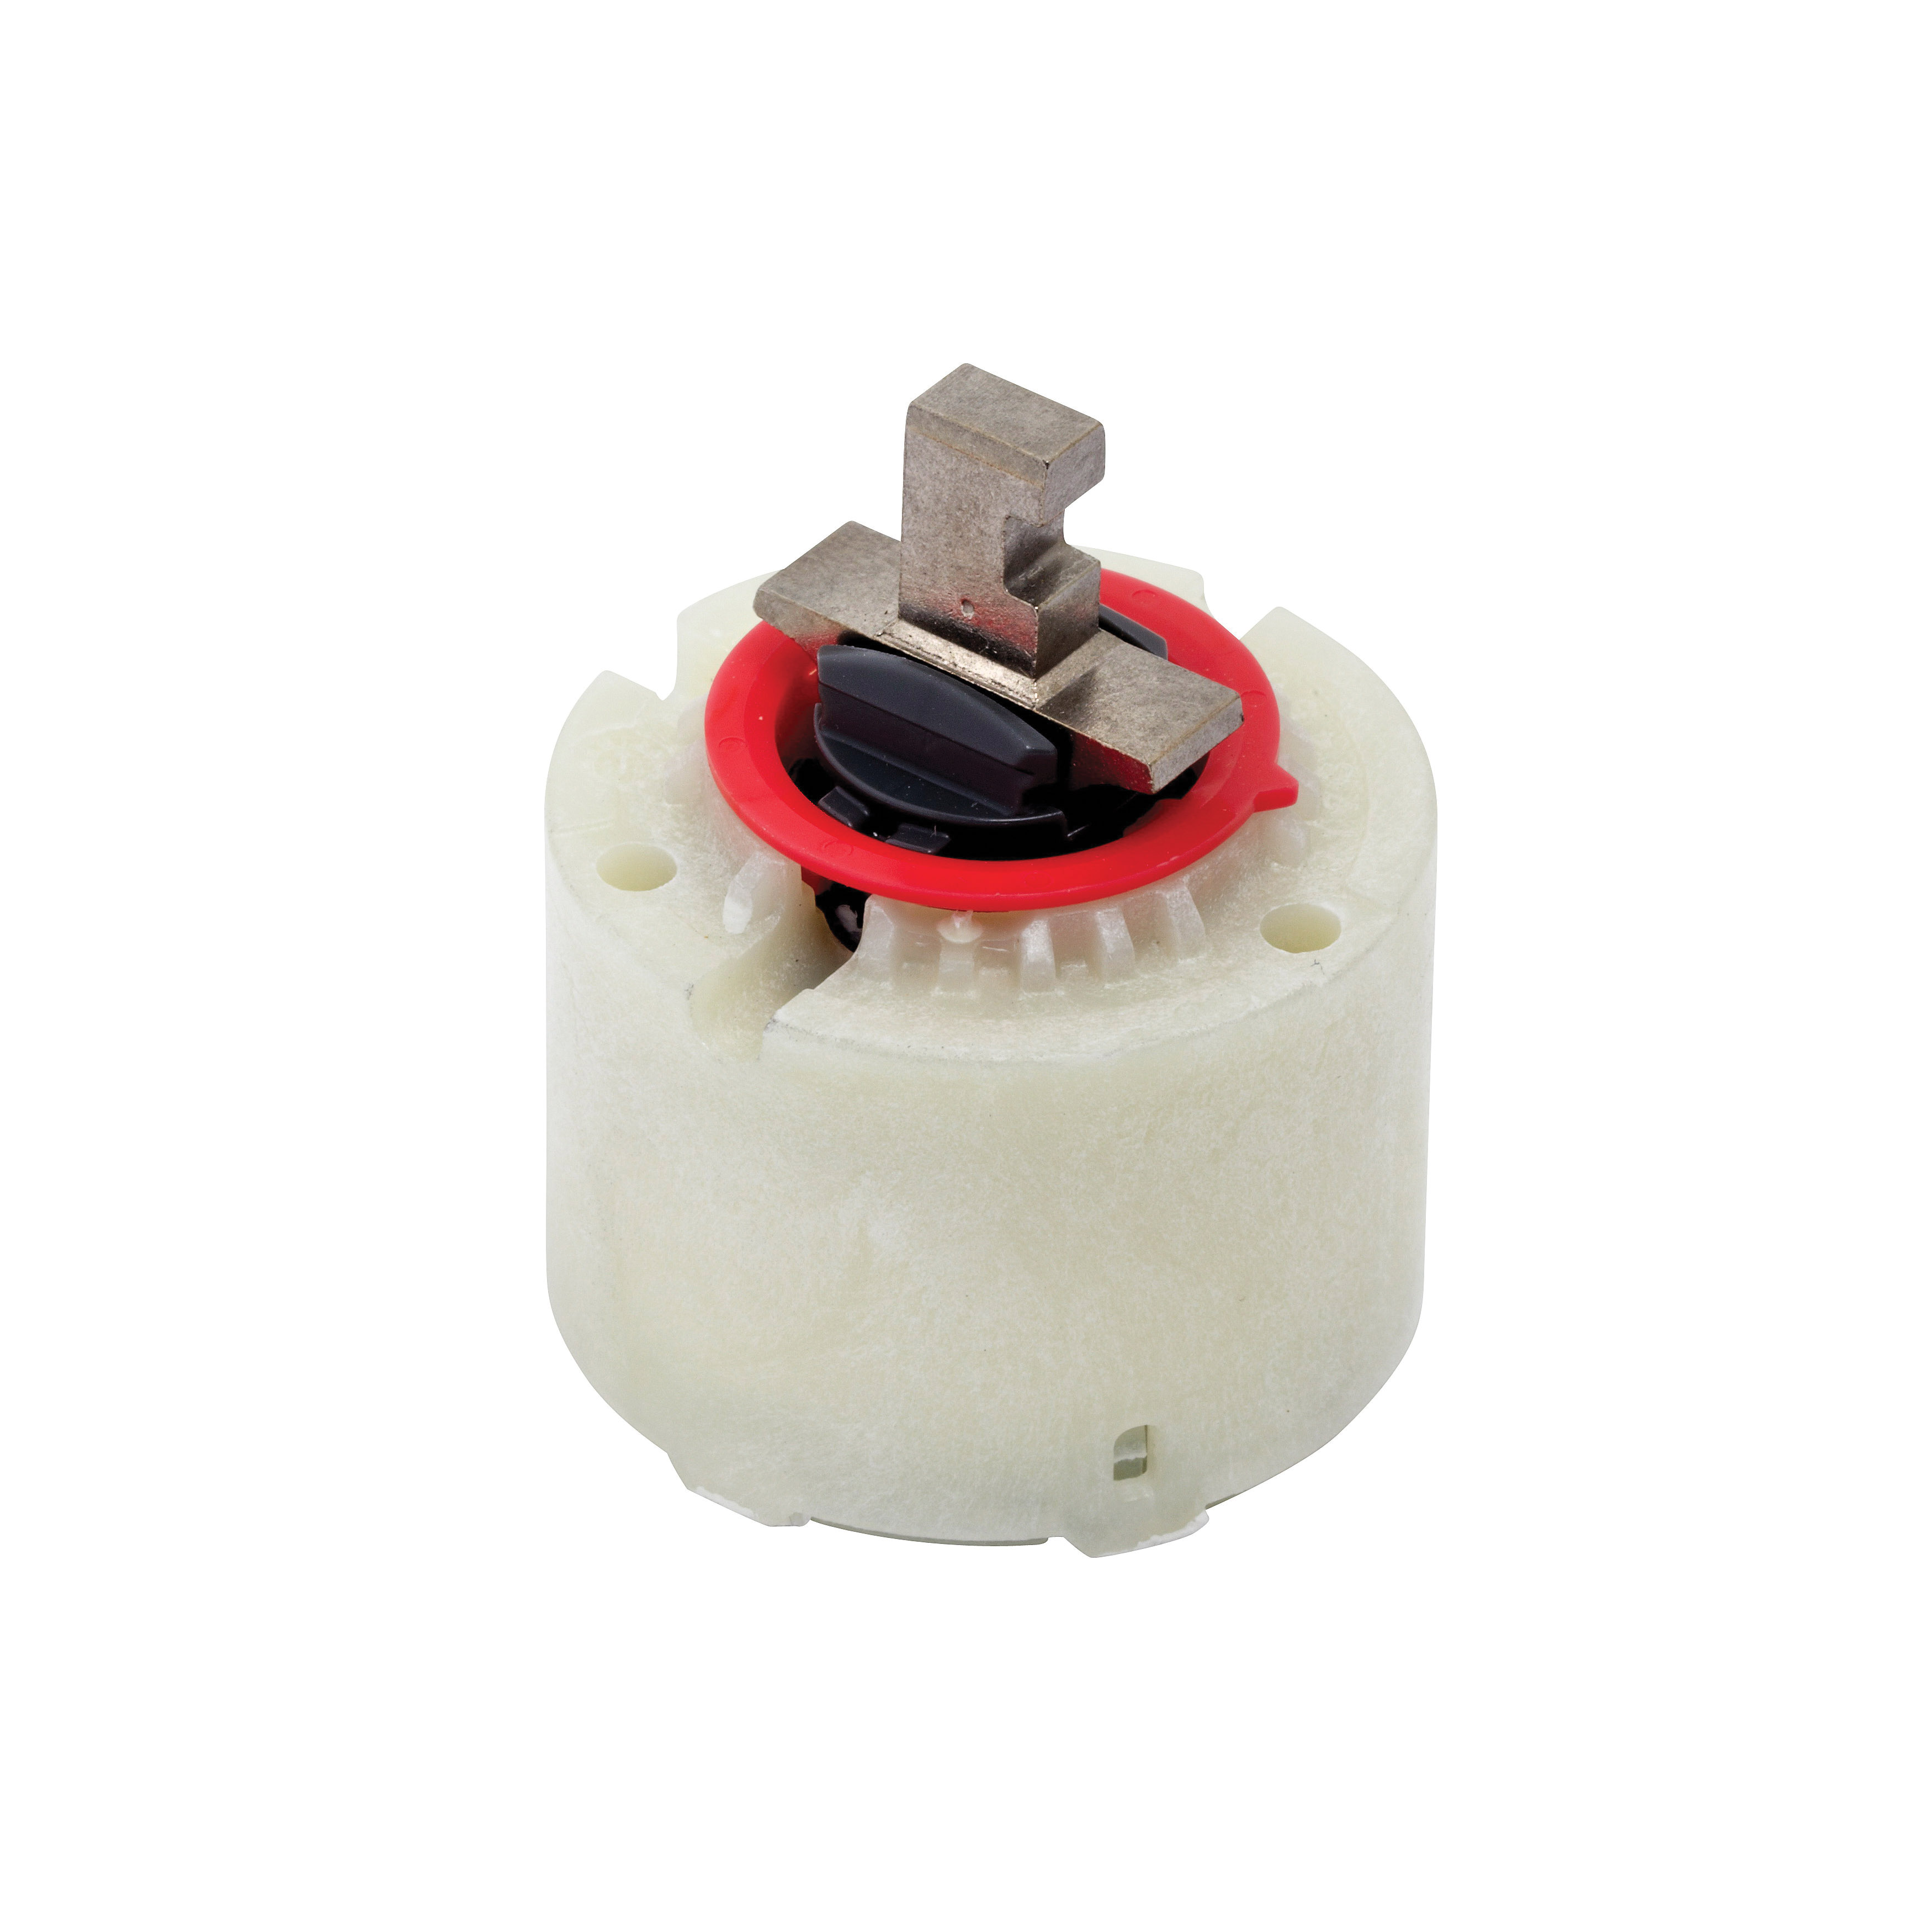 American Standard 023529-0070A Replacement Faucet Valve Cartridge With Seal, For Use With Reliant + Ceramix Faucet, Import